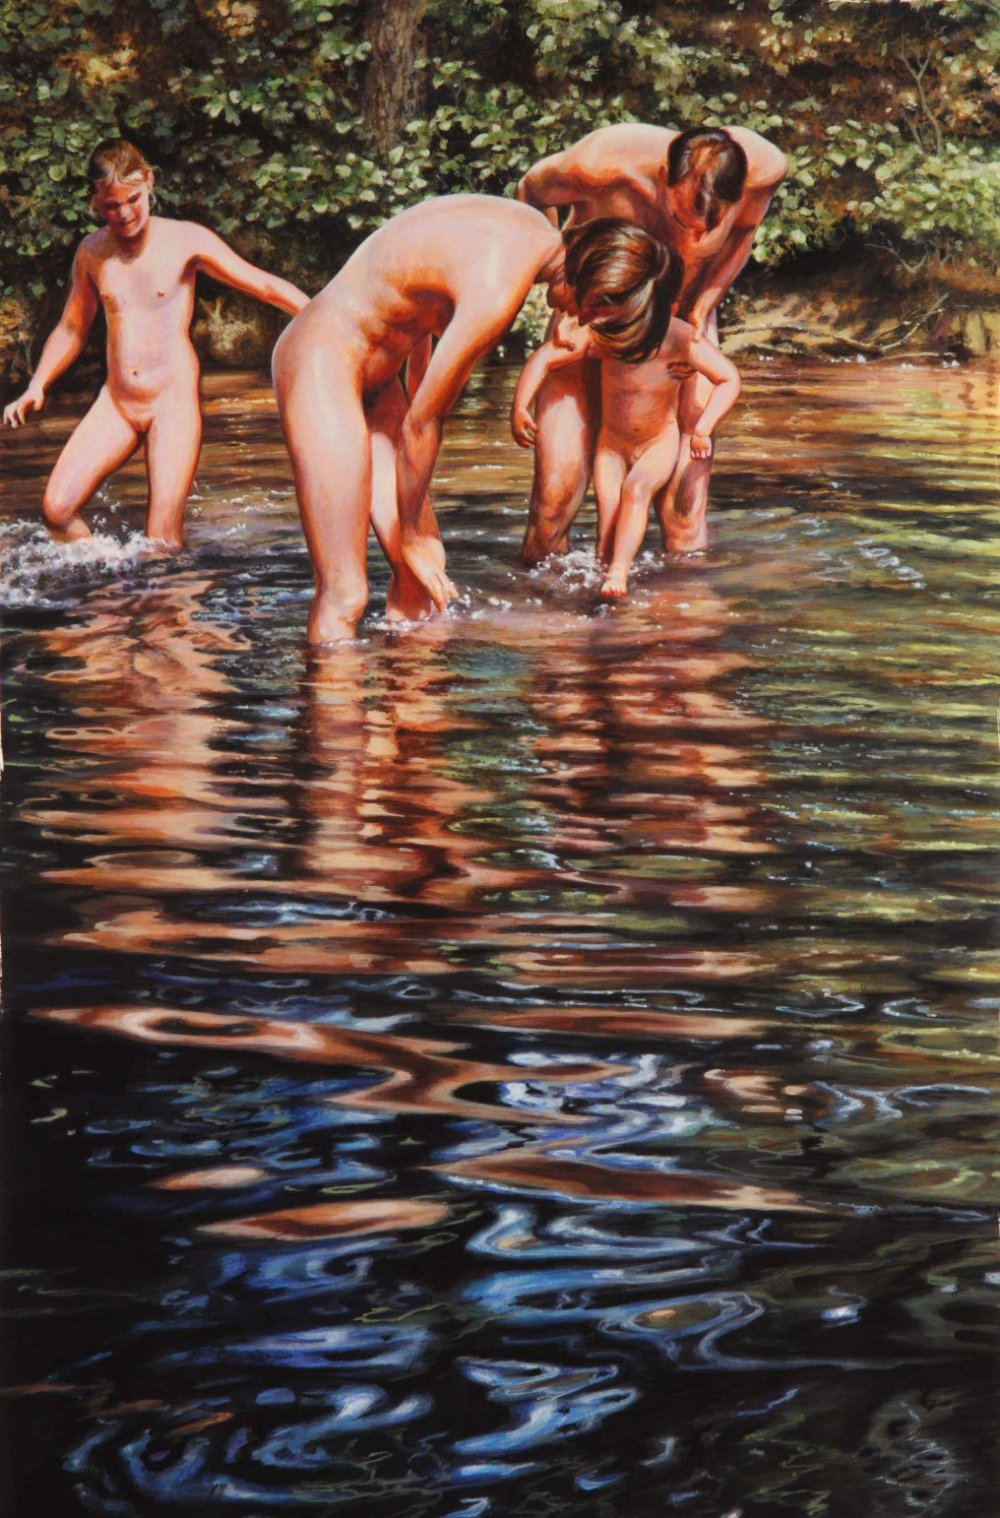 Human Nudity In Its Purest Form In Susannah Martins Paintings 9